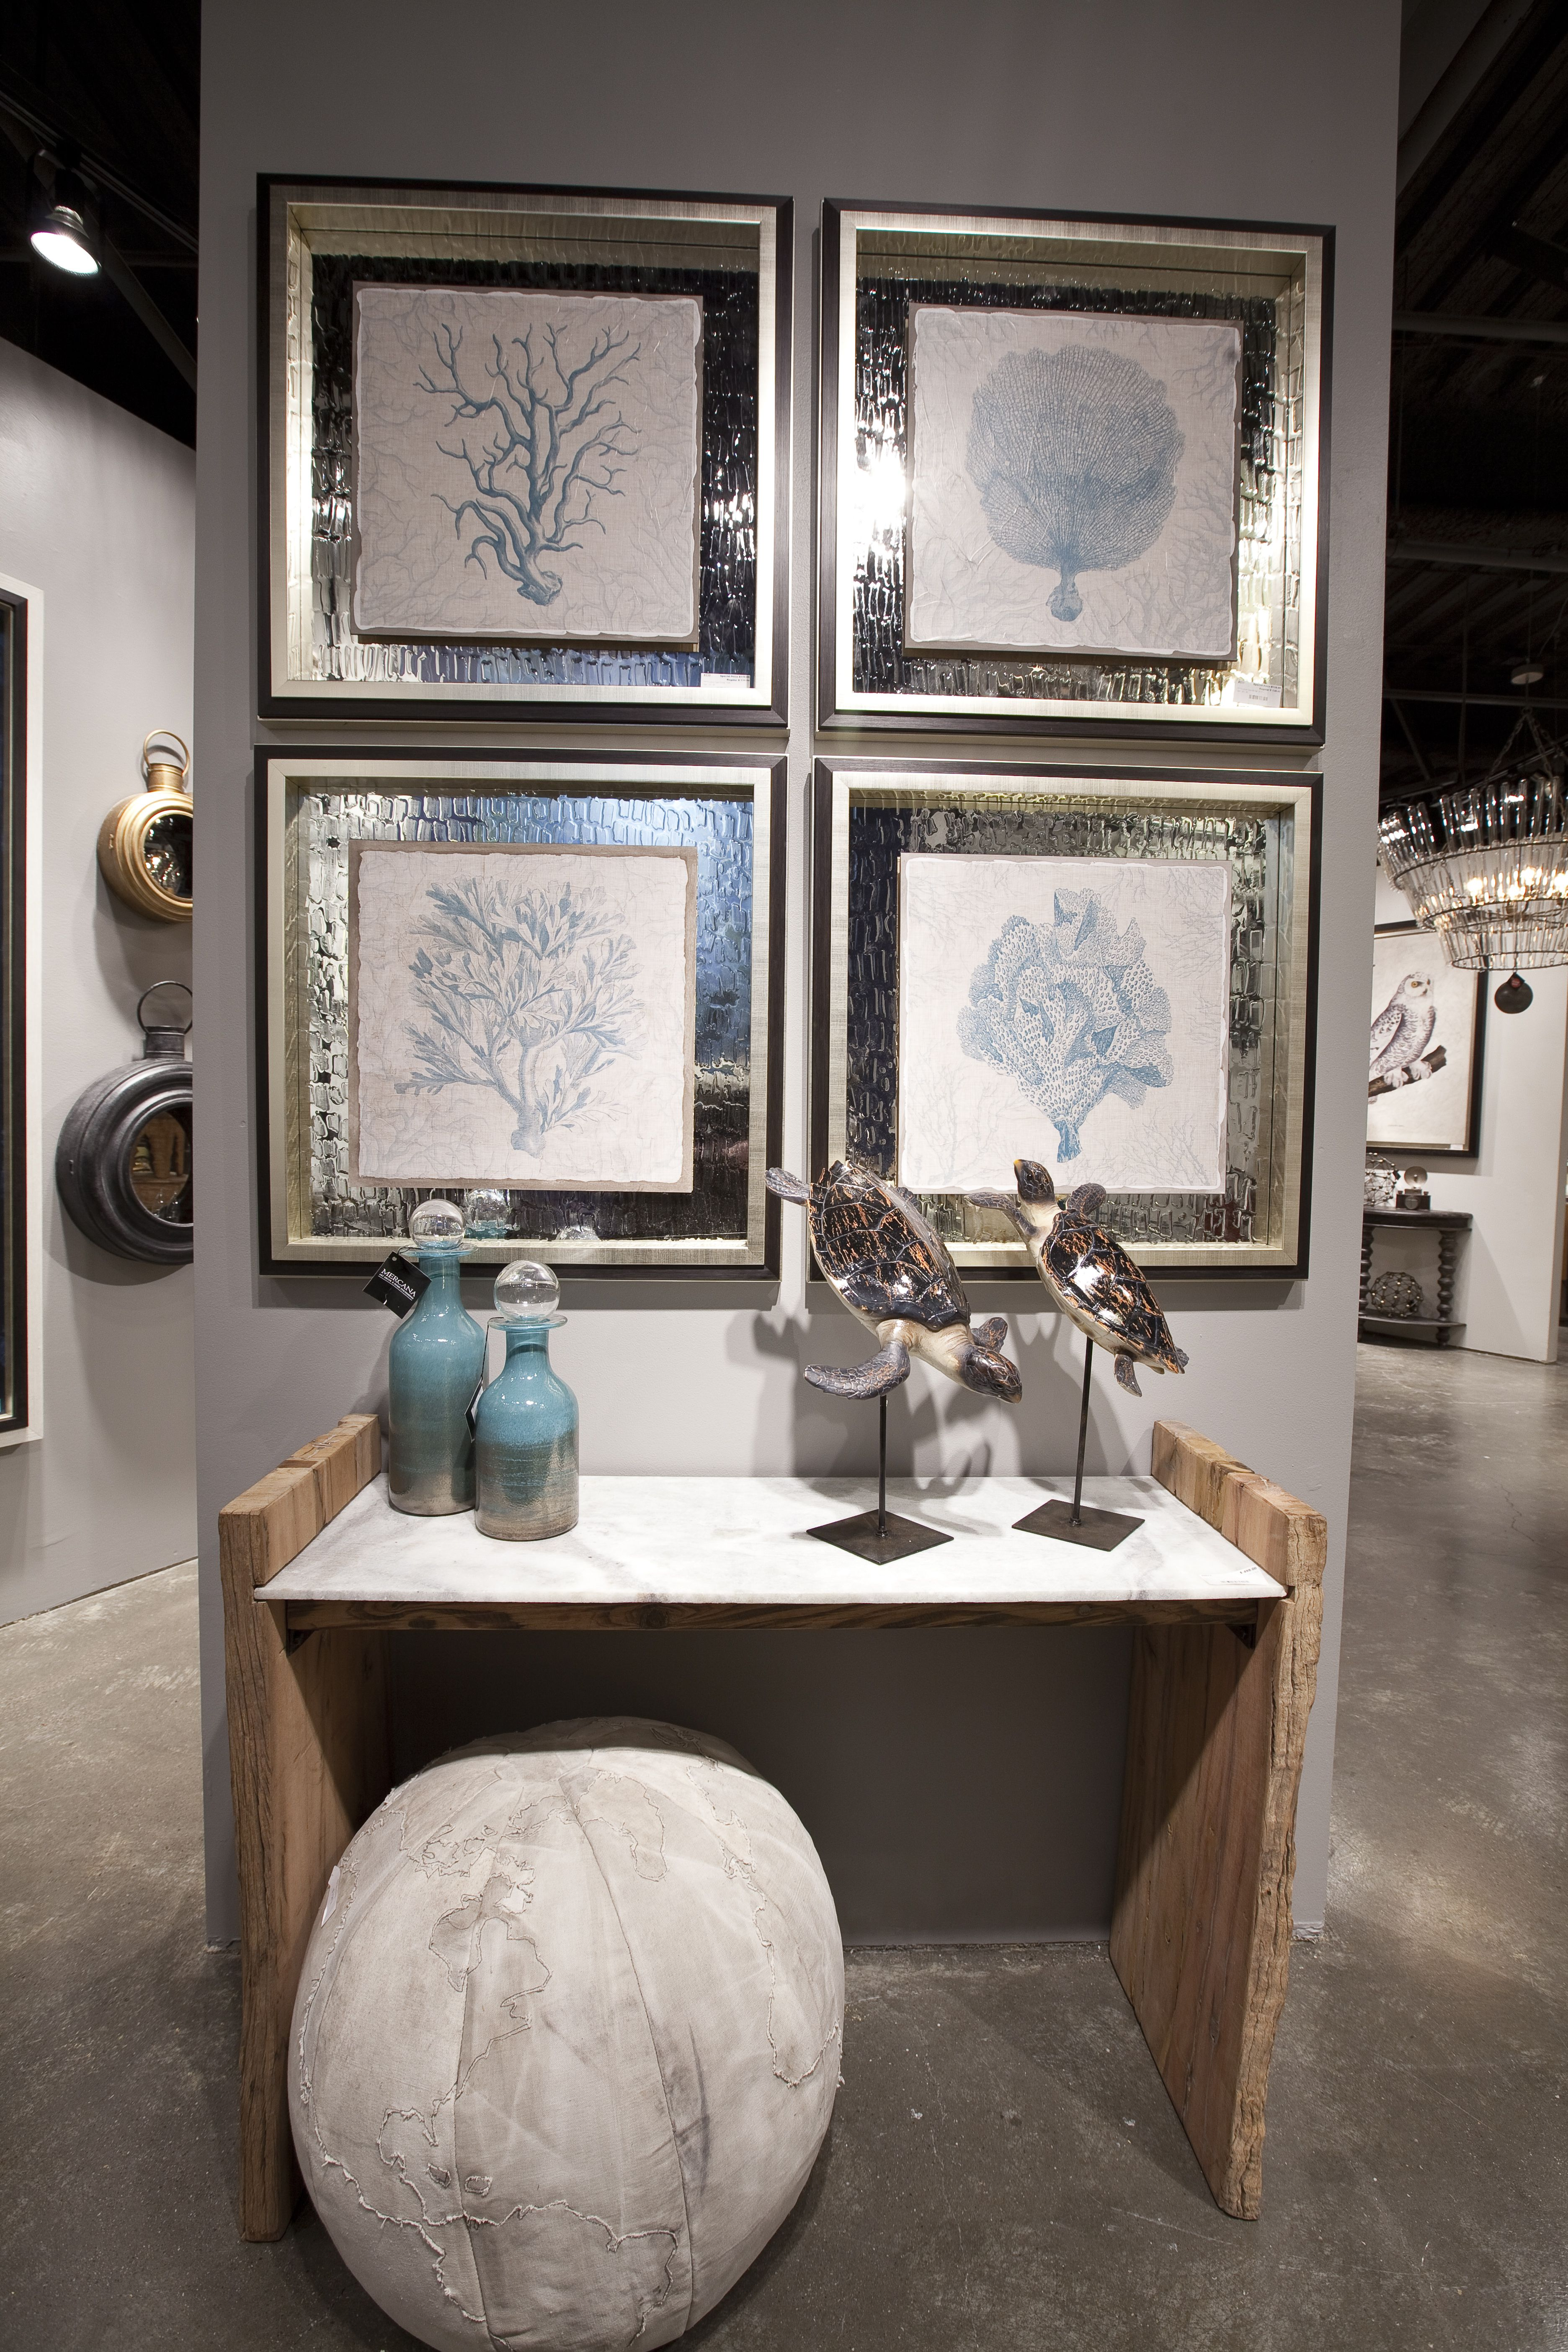 featuring our coral motif framed art series framed decograph with featuring our coral motif framed art series framed decograph with antique leather texture on the